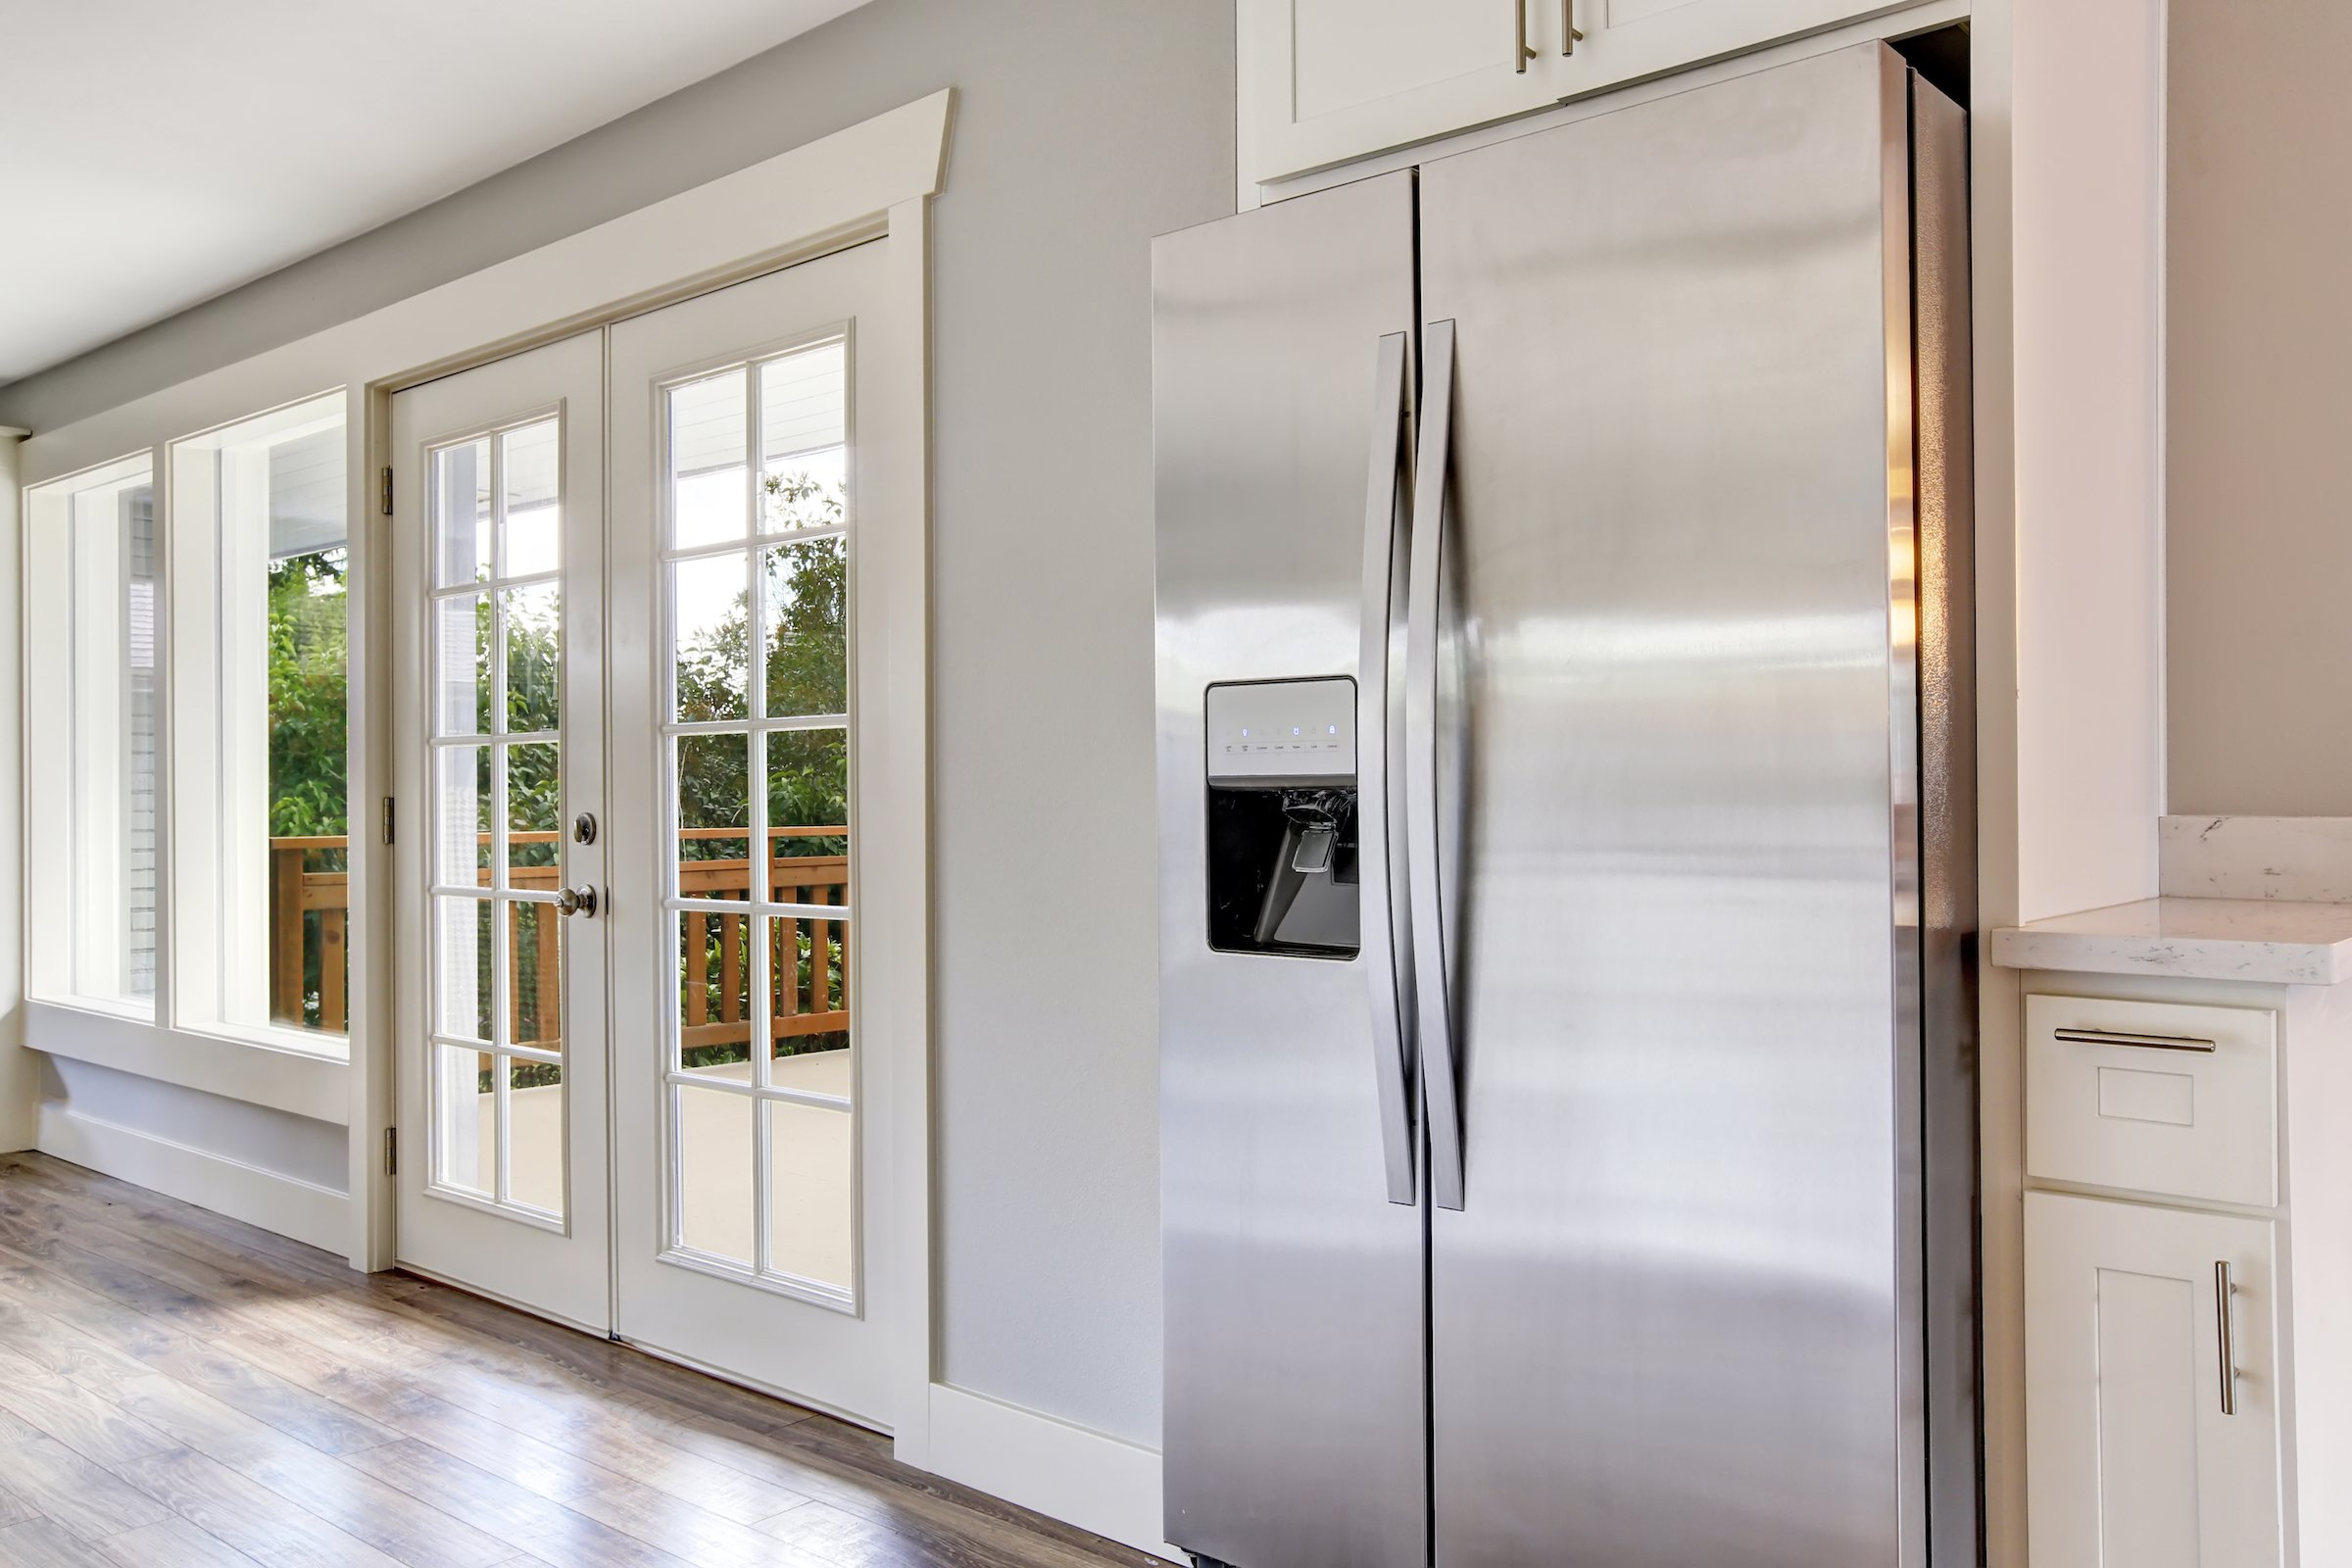 Tips for moving a fridge properly.